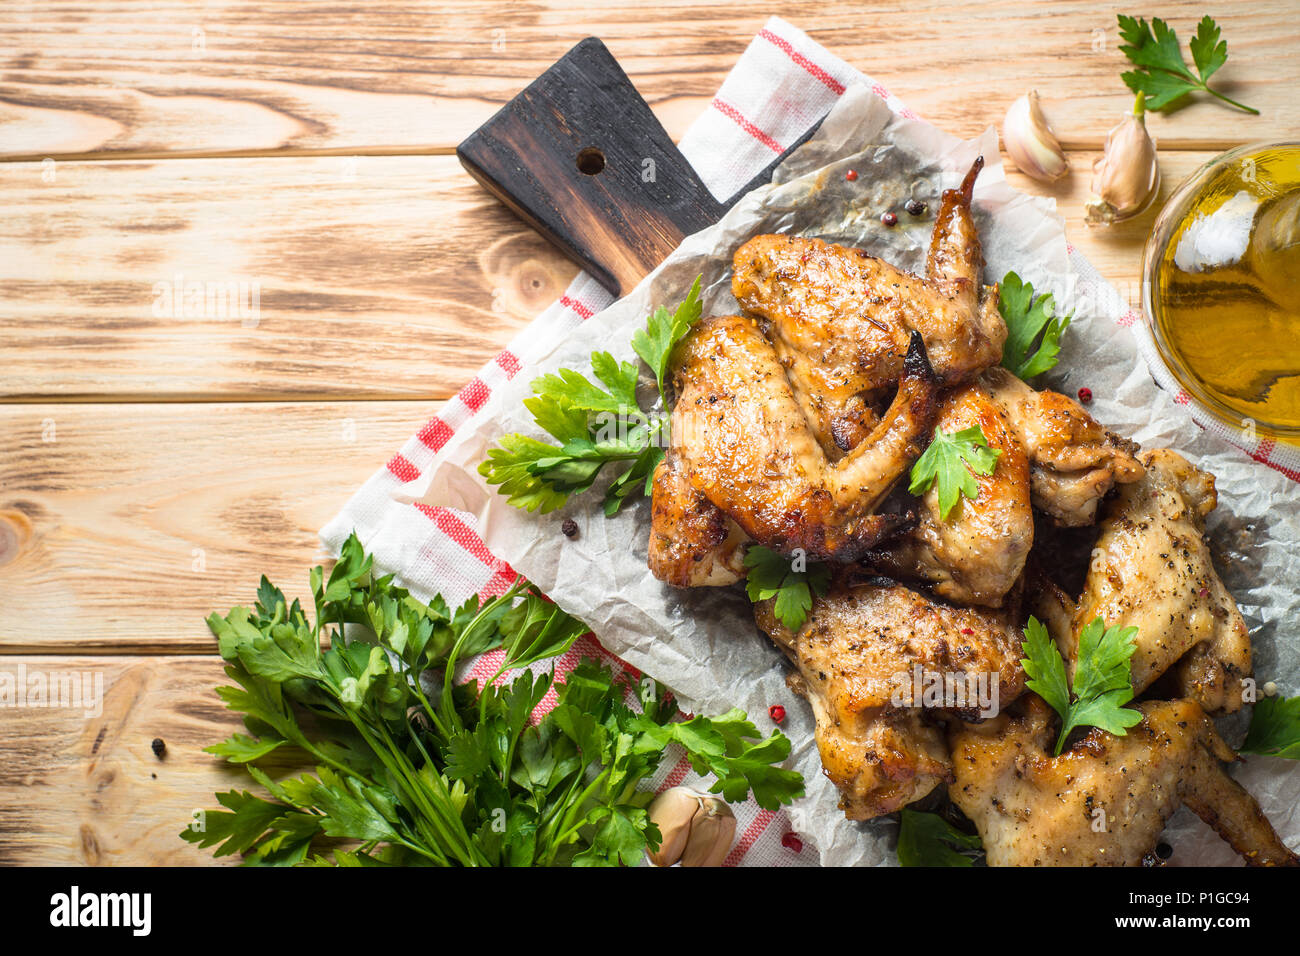 Baked chicken wings. Fried chicken of barbecue on wooden table. Top view copy space. - Stock Image